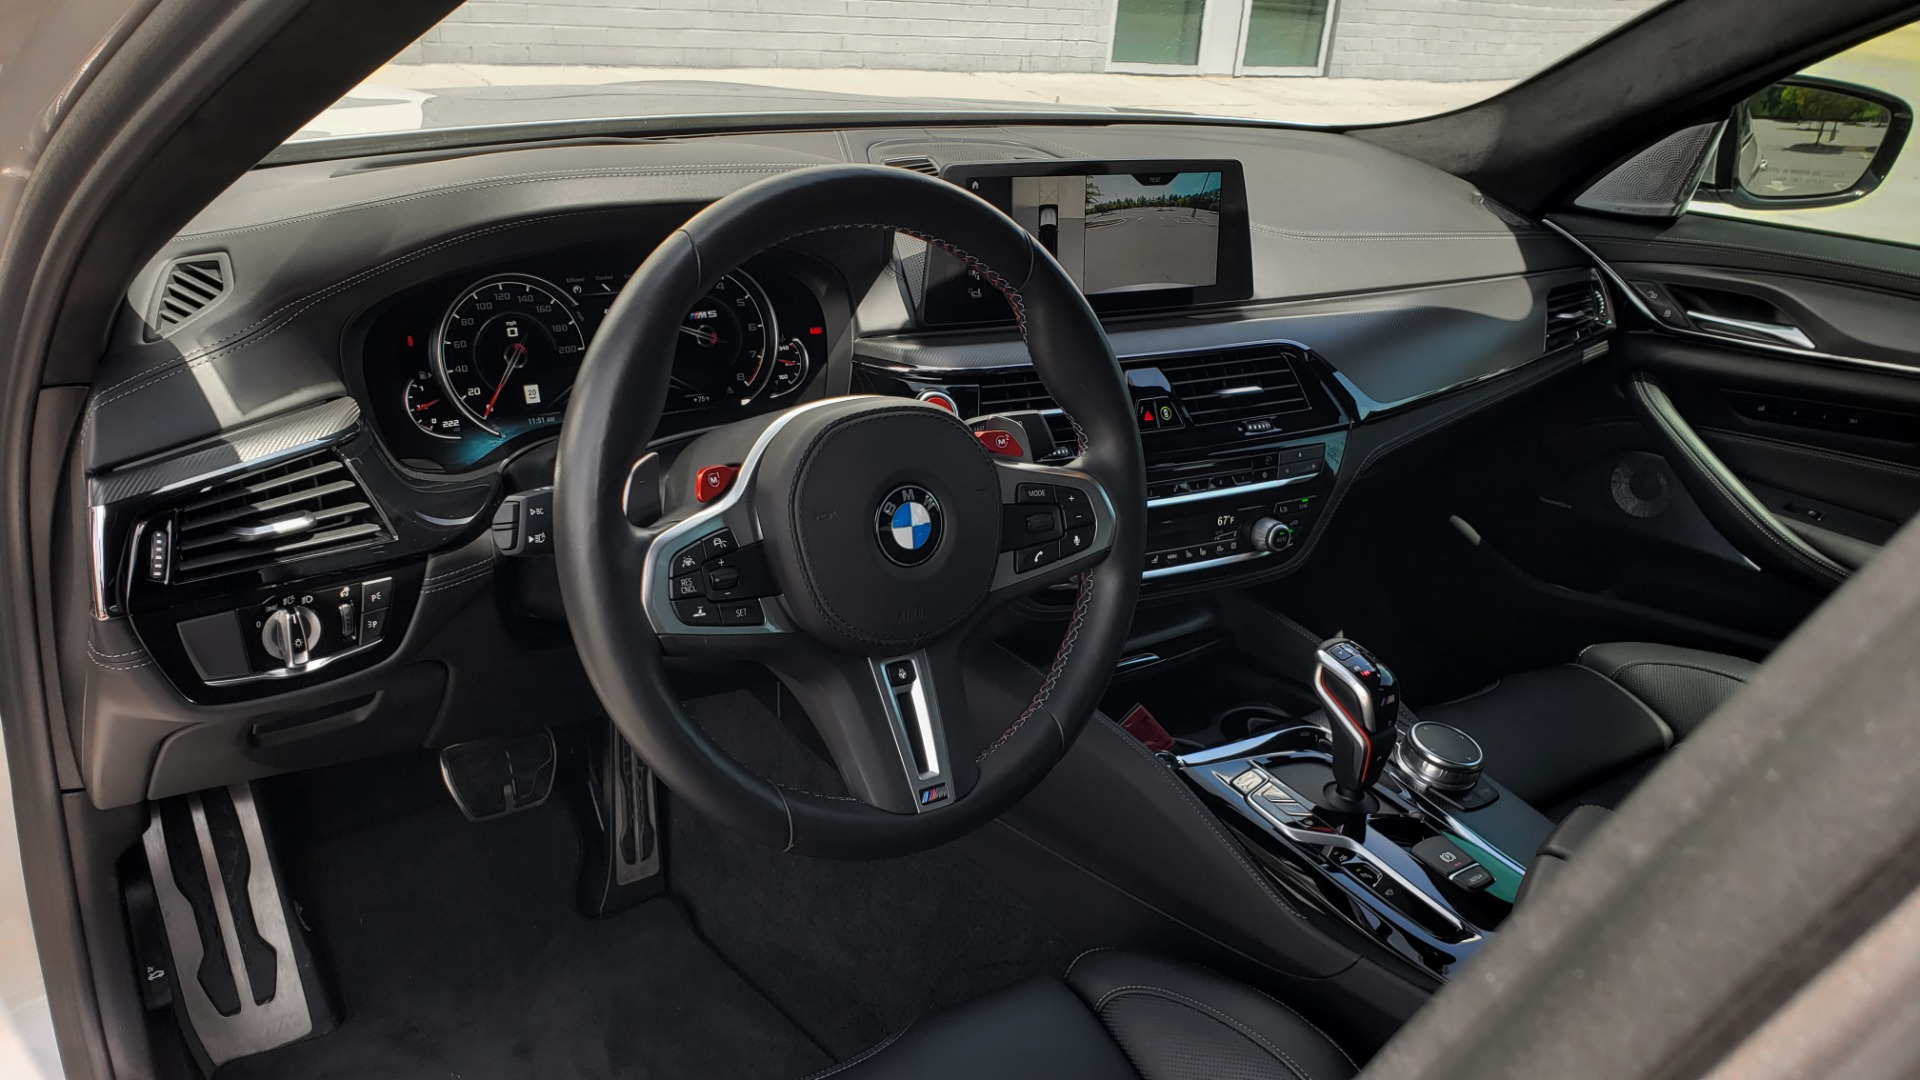 Used 2018 BMW M5 SEDAN / EXEC PKG / DRVR ASST PLUS / MOONROOF / B&W SND for sale $81,495 at Formula Imports in Charlotte NC 28227 33